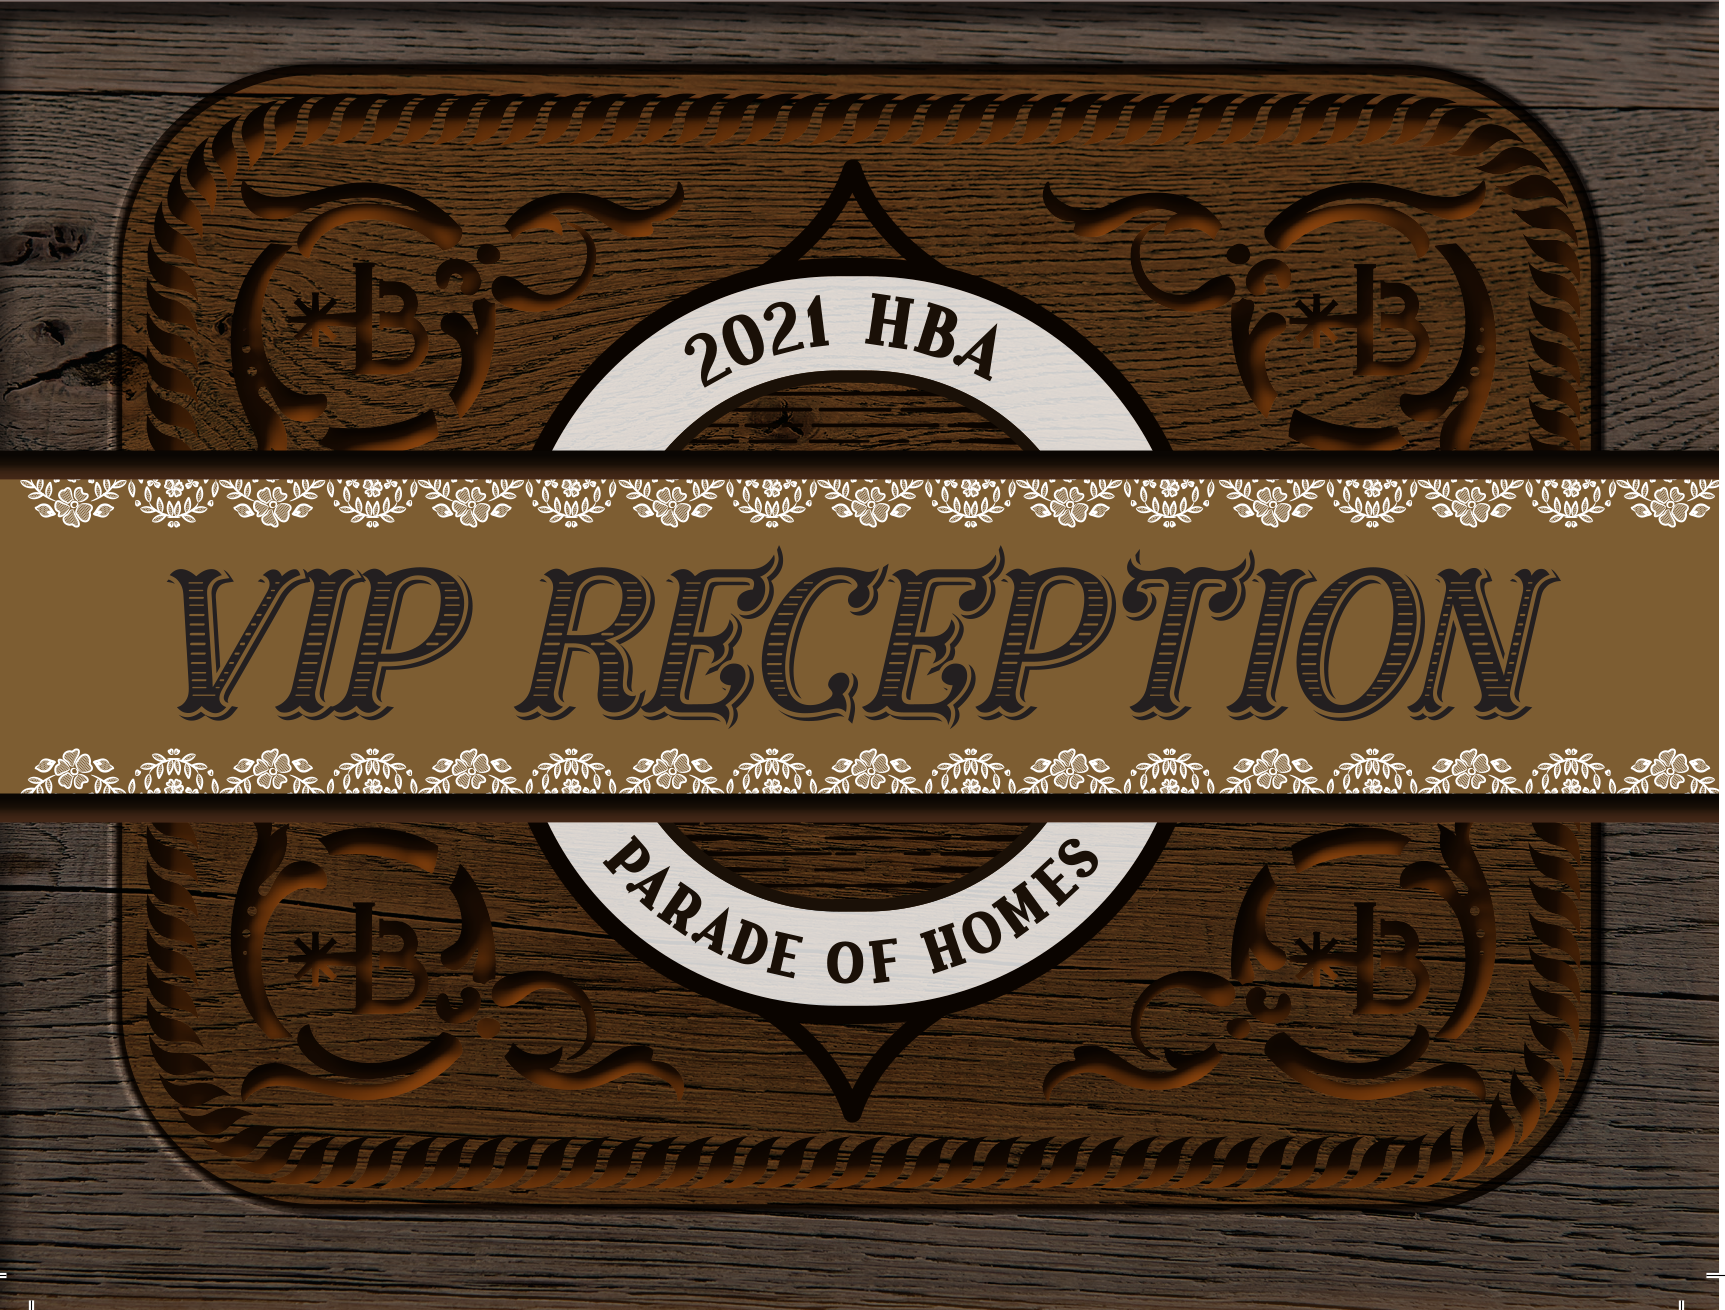 VIP Reception for the 2021 HBA Parade of Homes